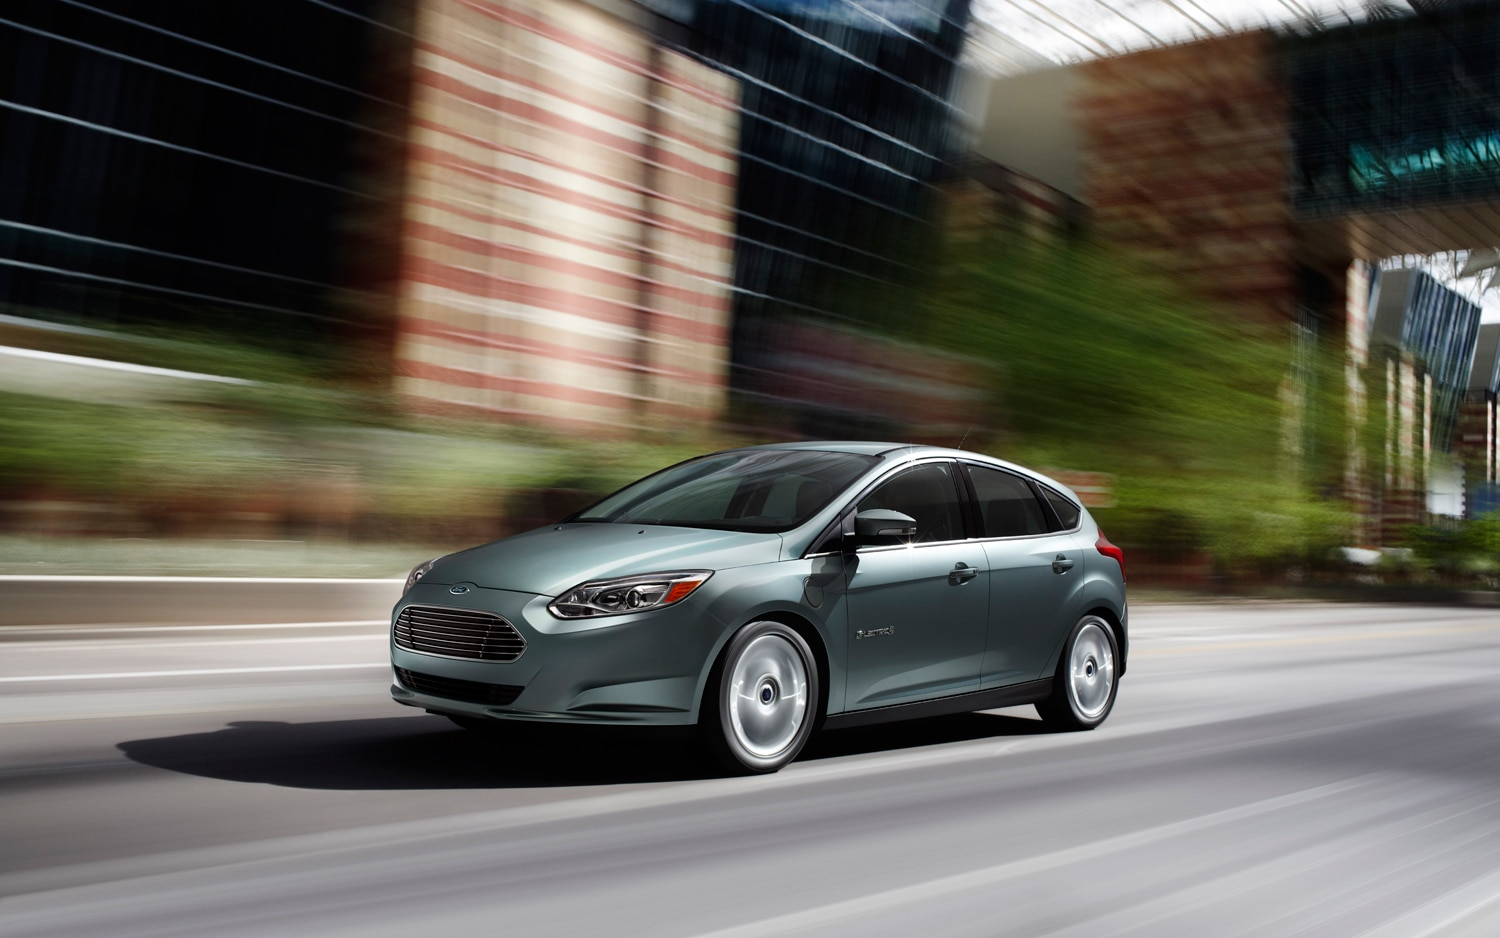 2012 Ford Focus Electric Front Left Side View1